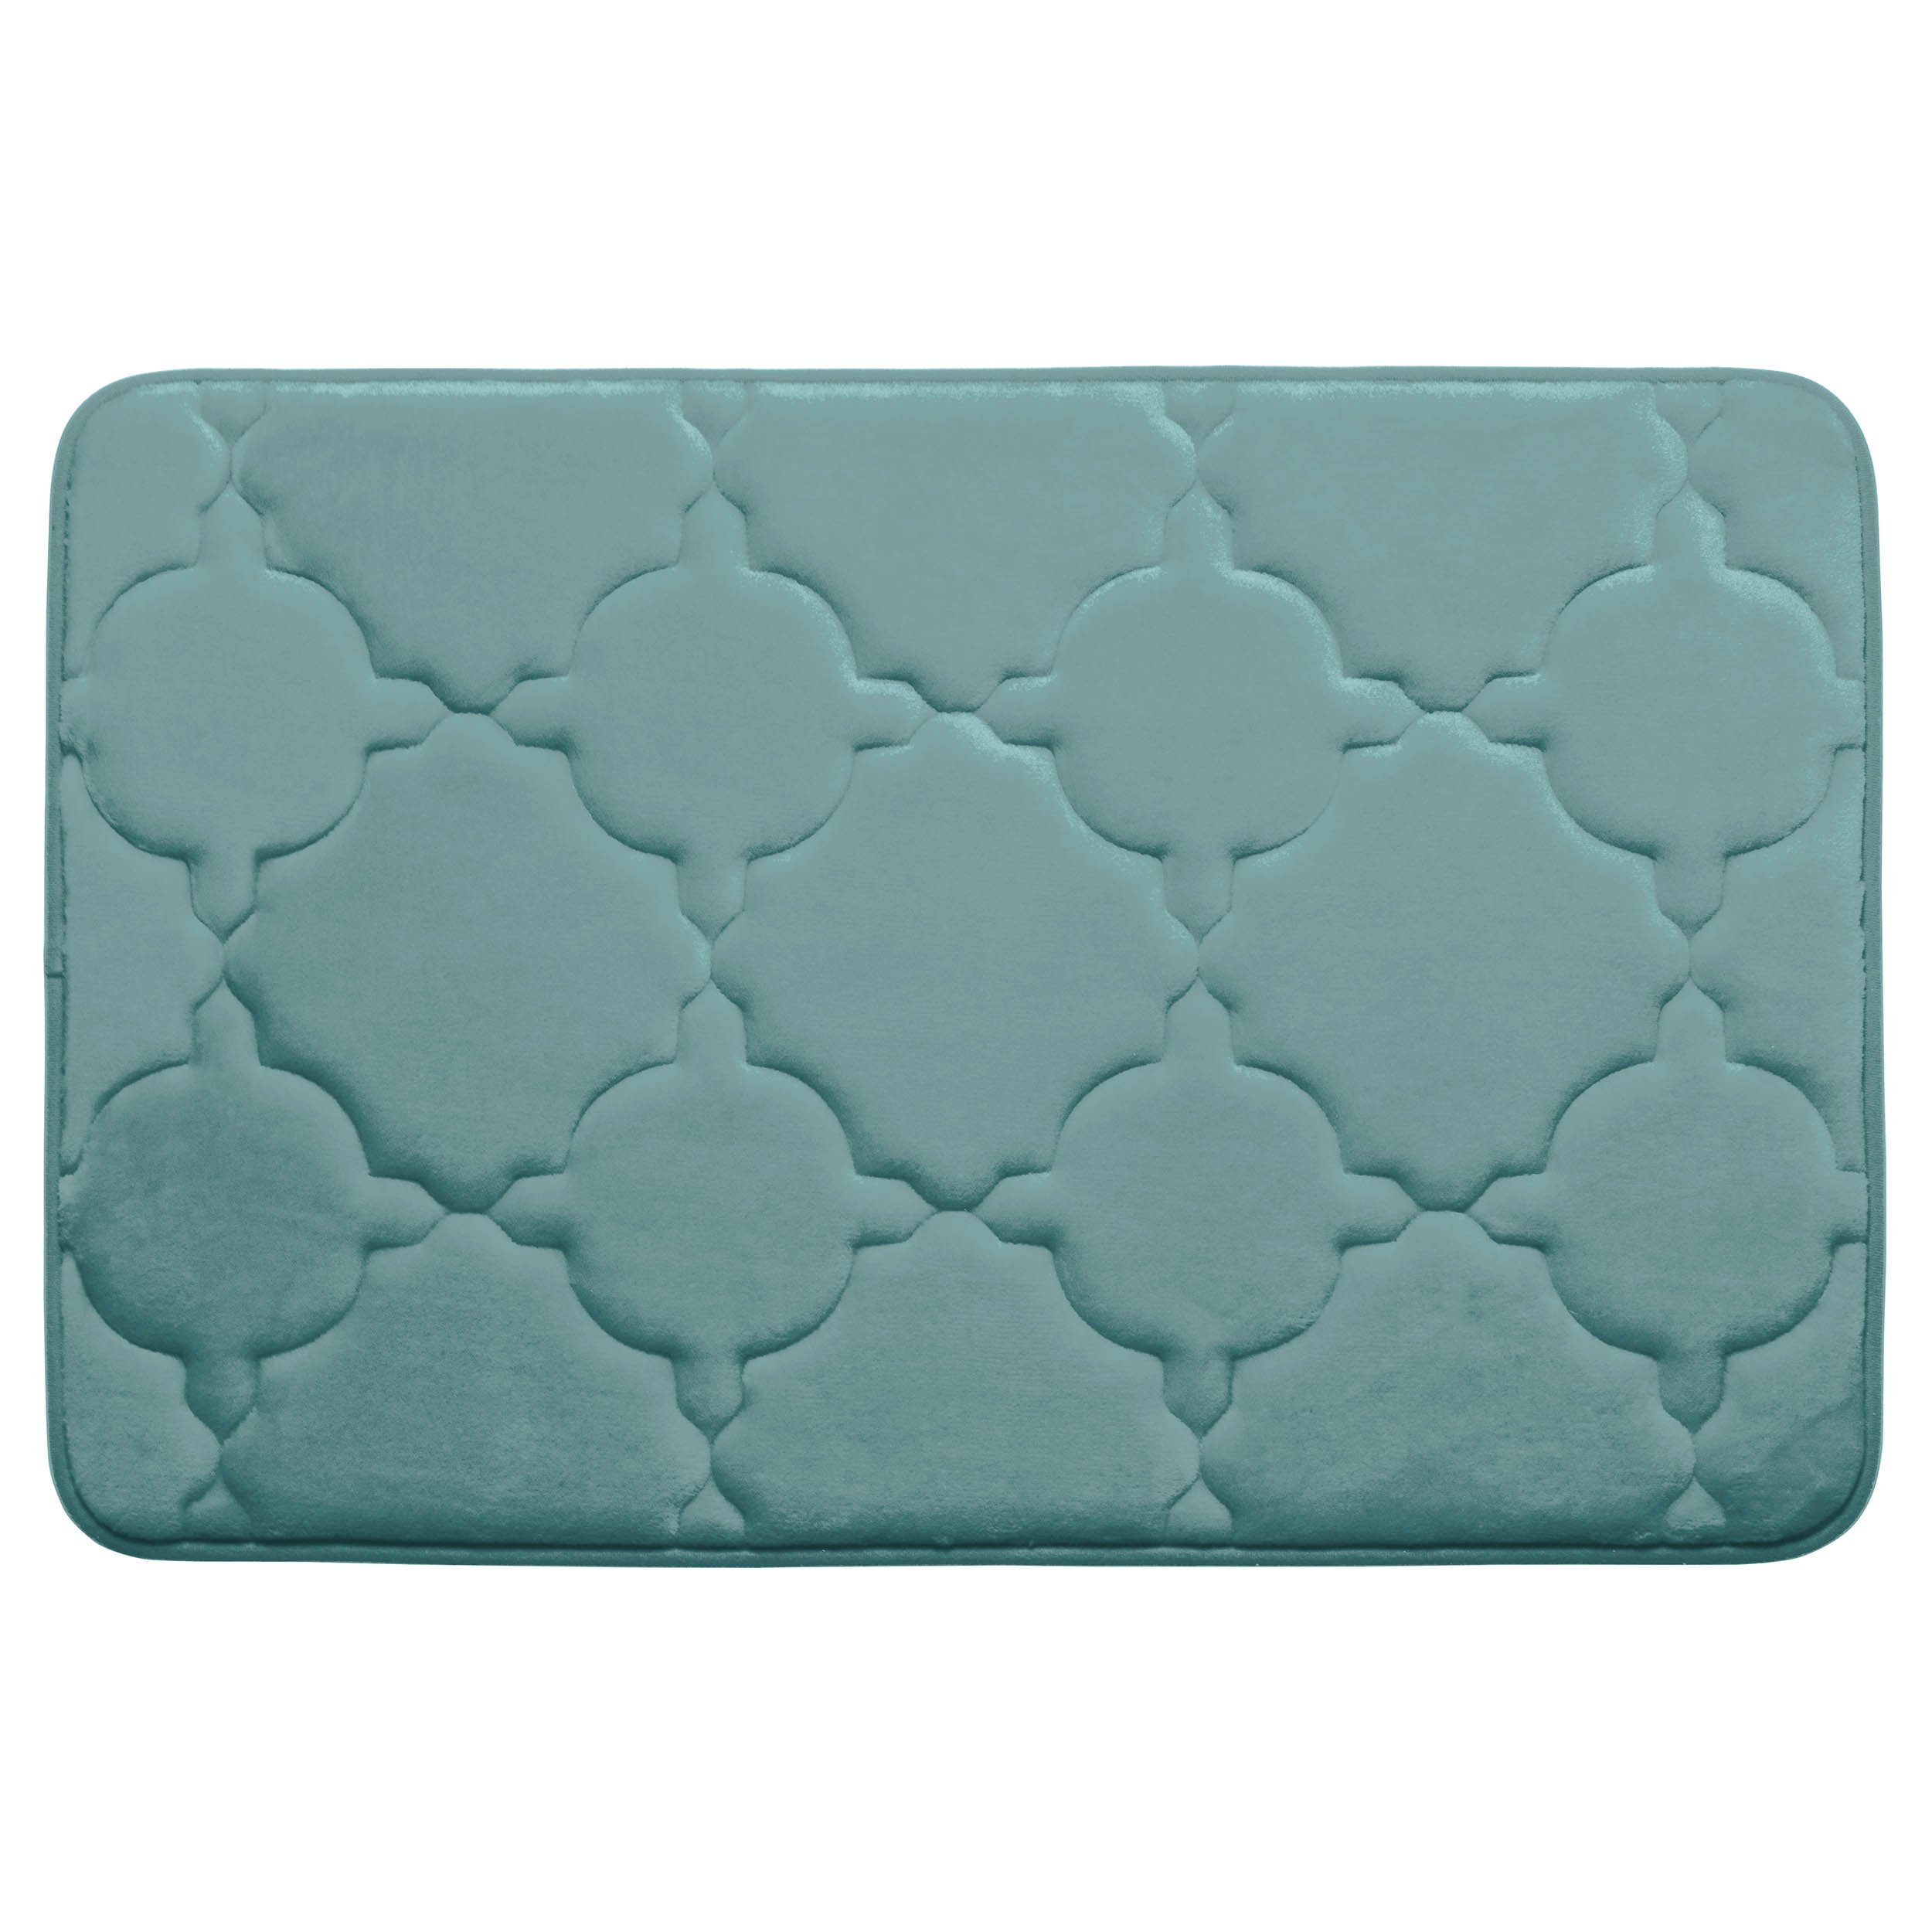 Dorothy Premium Extra Thick Memory Foam Bath Mat with BounceComfort Technology, 20'' x 32'' Marine Blue